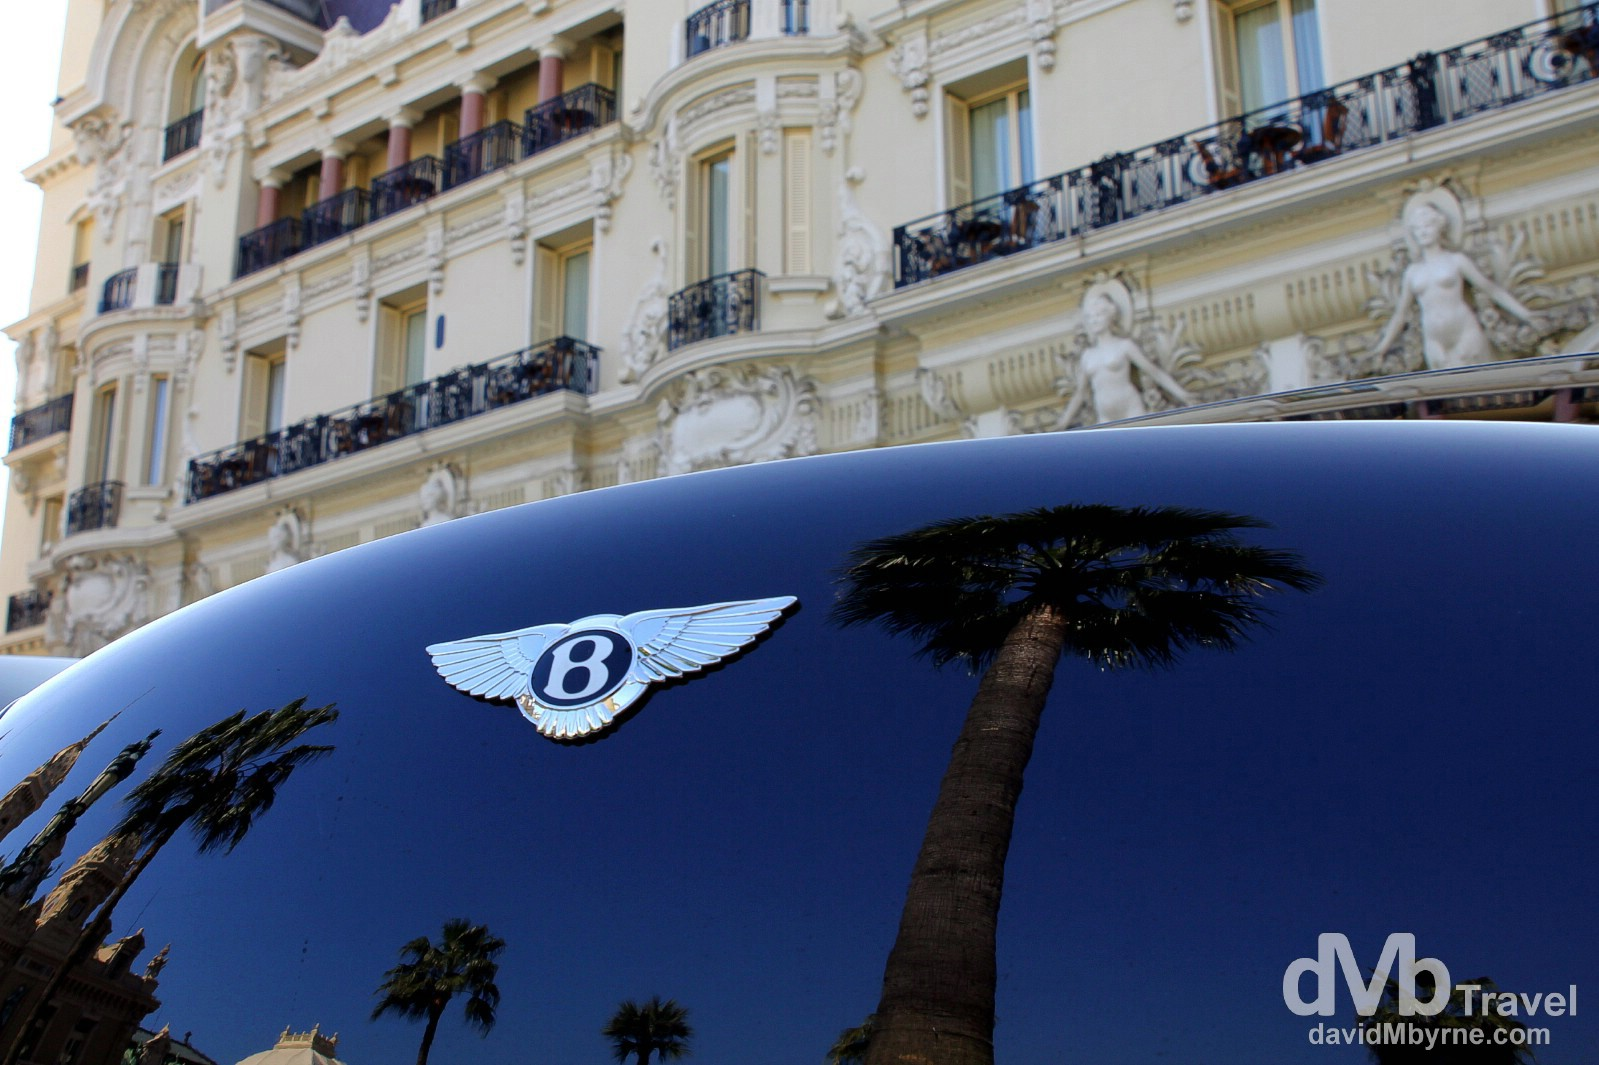 A Bentley parked outside the Hotel de Paris in Monte-Carlo, Monaco, March 14th, 2014.